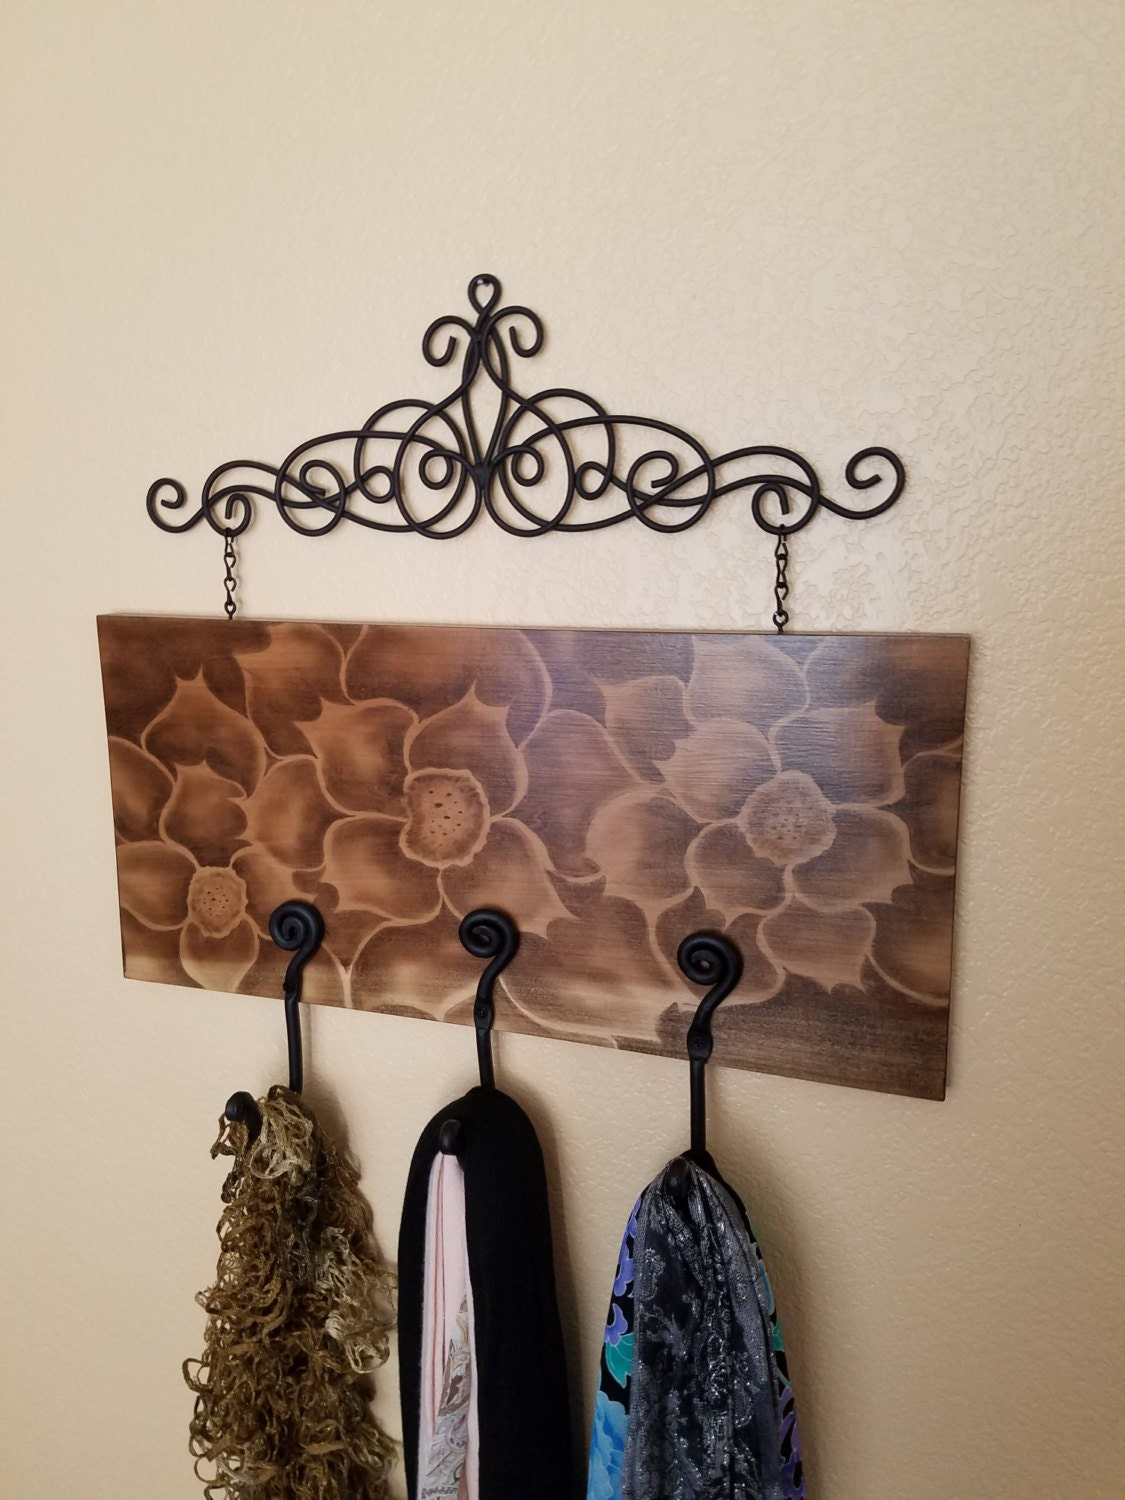 Coat Rack Wall Hanger Decor Home Decor Hand Crafted Rustic